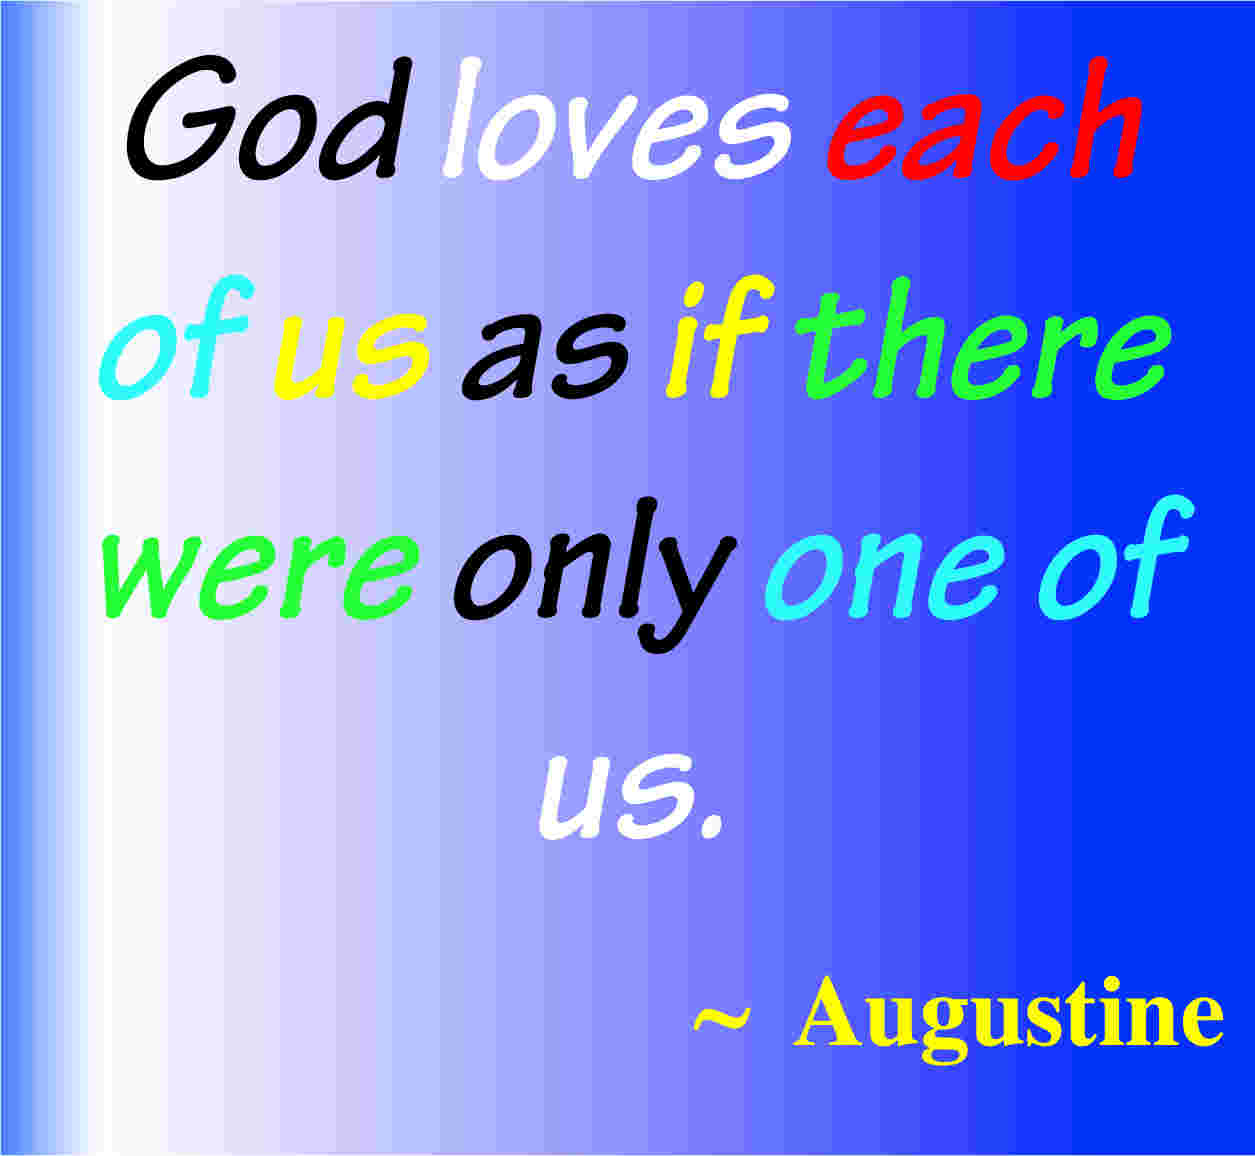 Christian Quotes About Love Adorable 20 Inspirational Bible Verses About God's Love